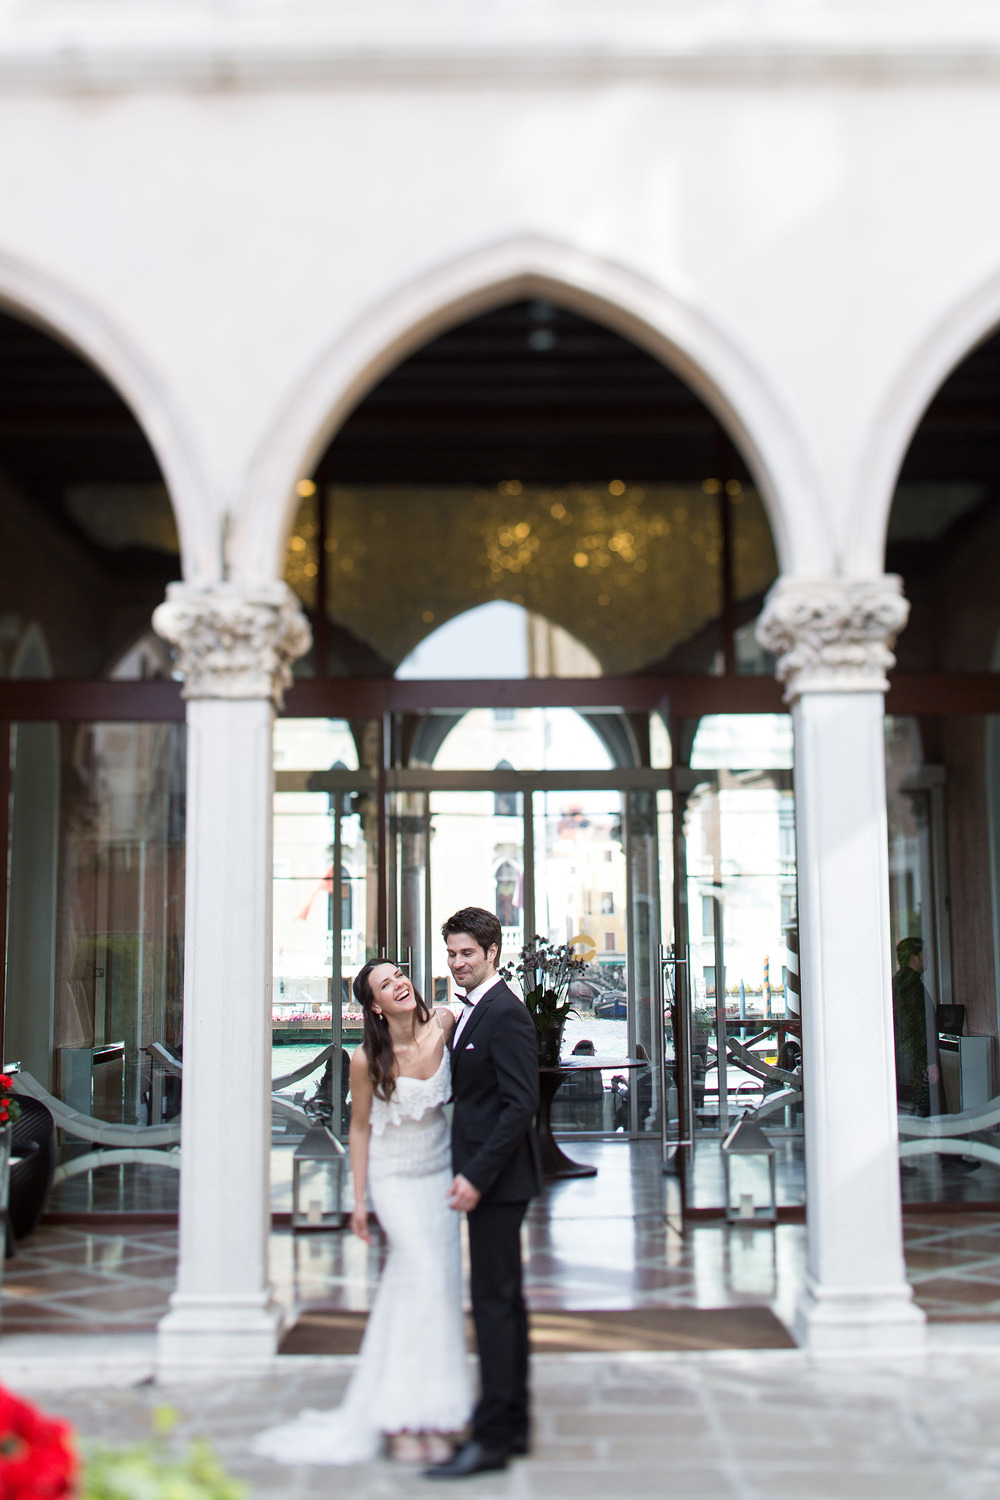 VeniceStyledShoot (145 of 170).jpg